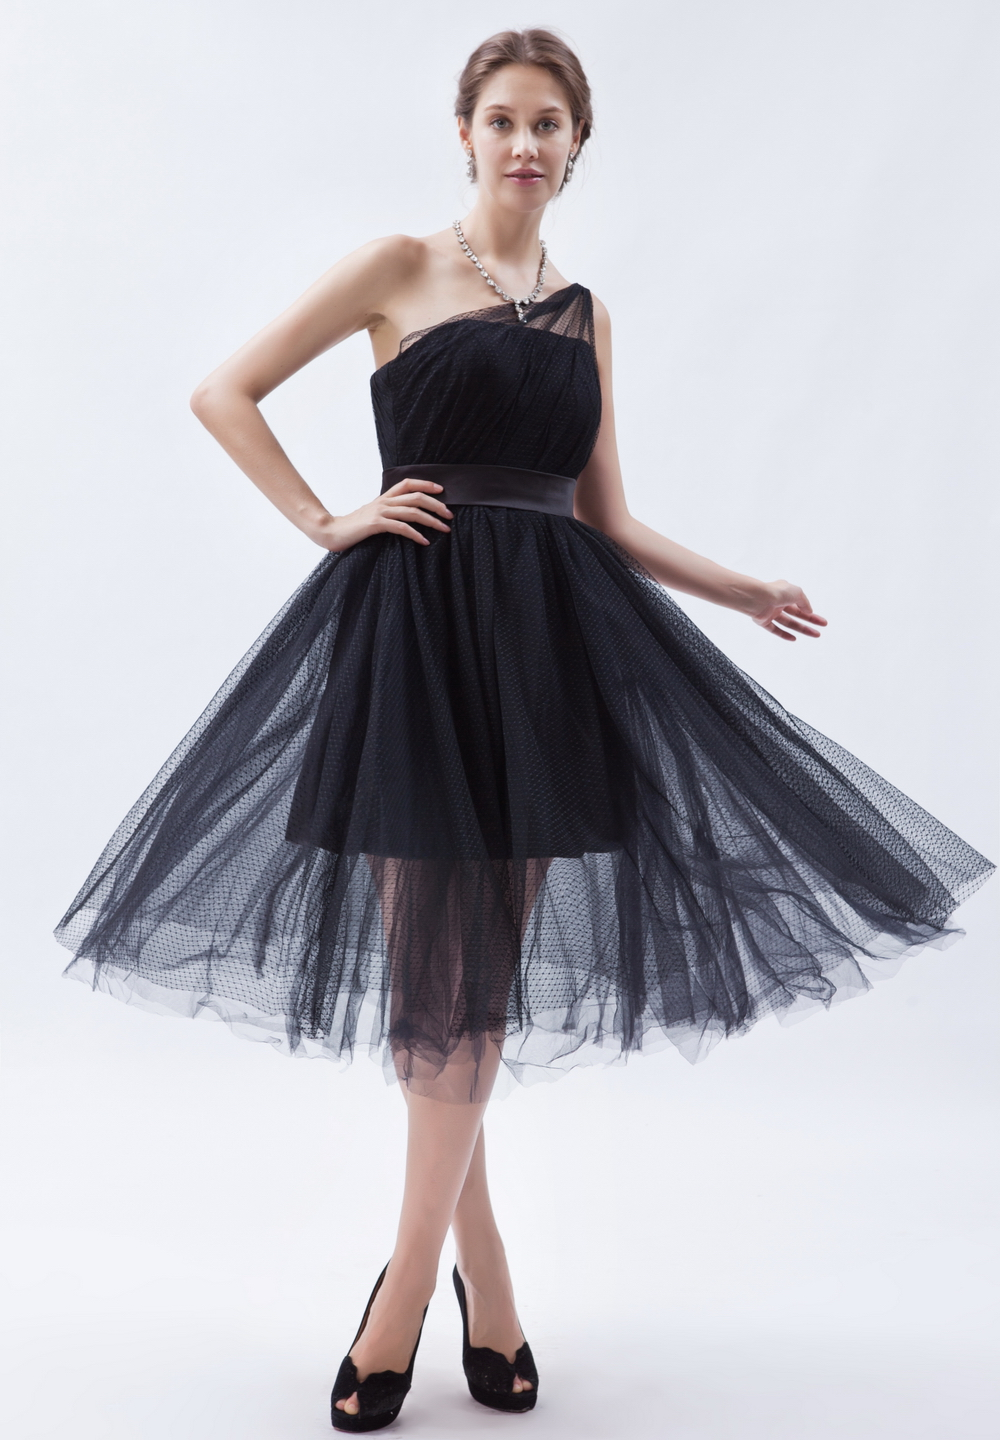 Gardlilac Tulle One-shoulder Short HomecomingDress Simple Black Party Dress A-line Evening Party Gowns